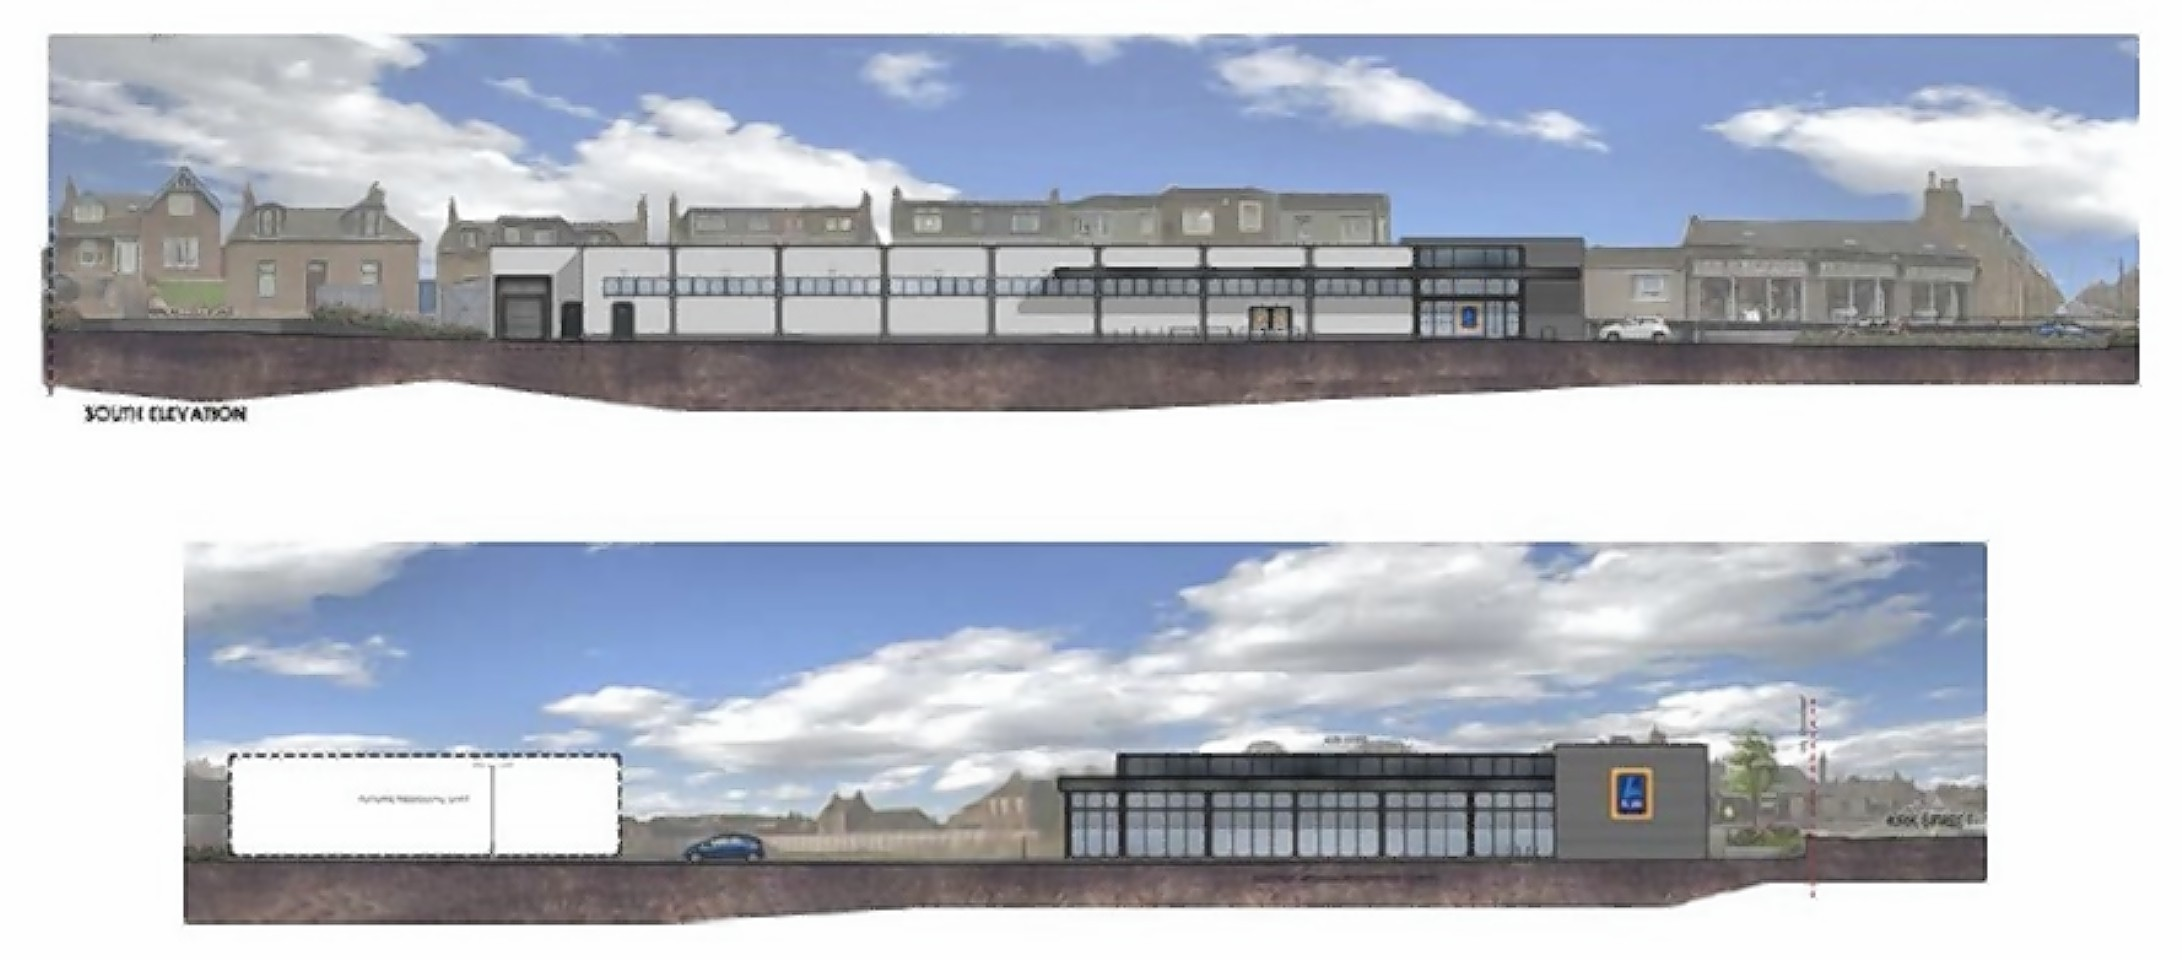 Aldi was granted permission to transform the former Kirkburn Mill land in Peterhead into a retail outlet